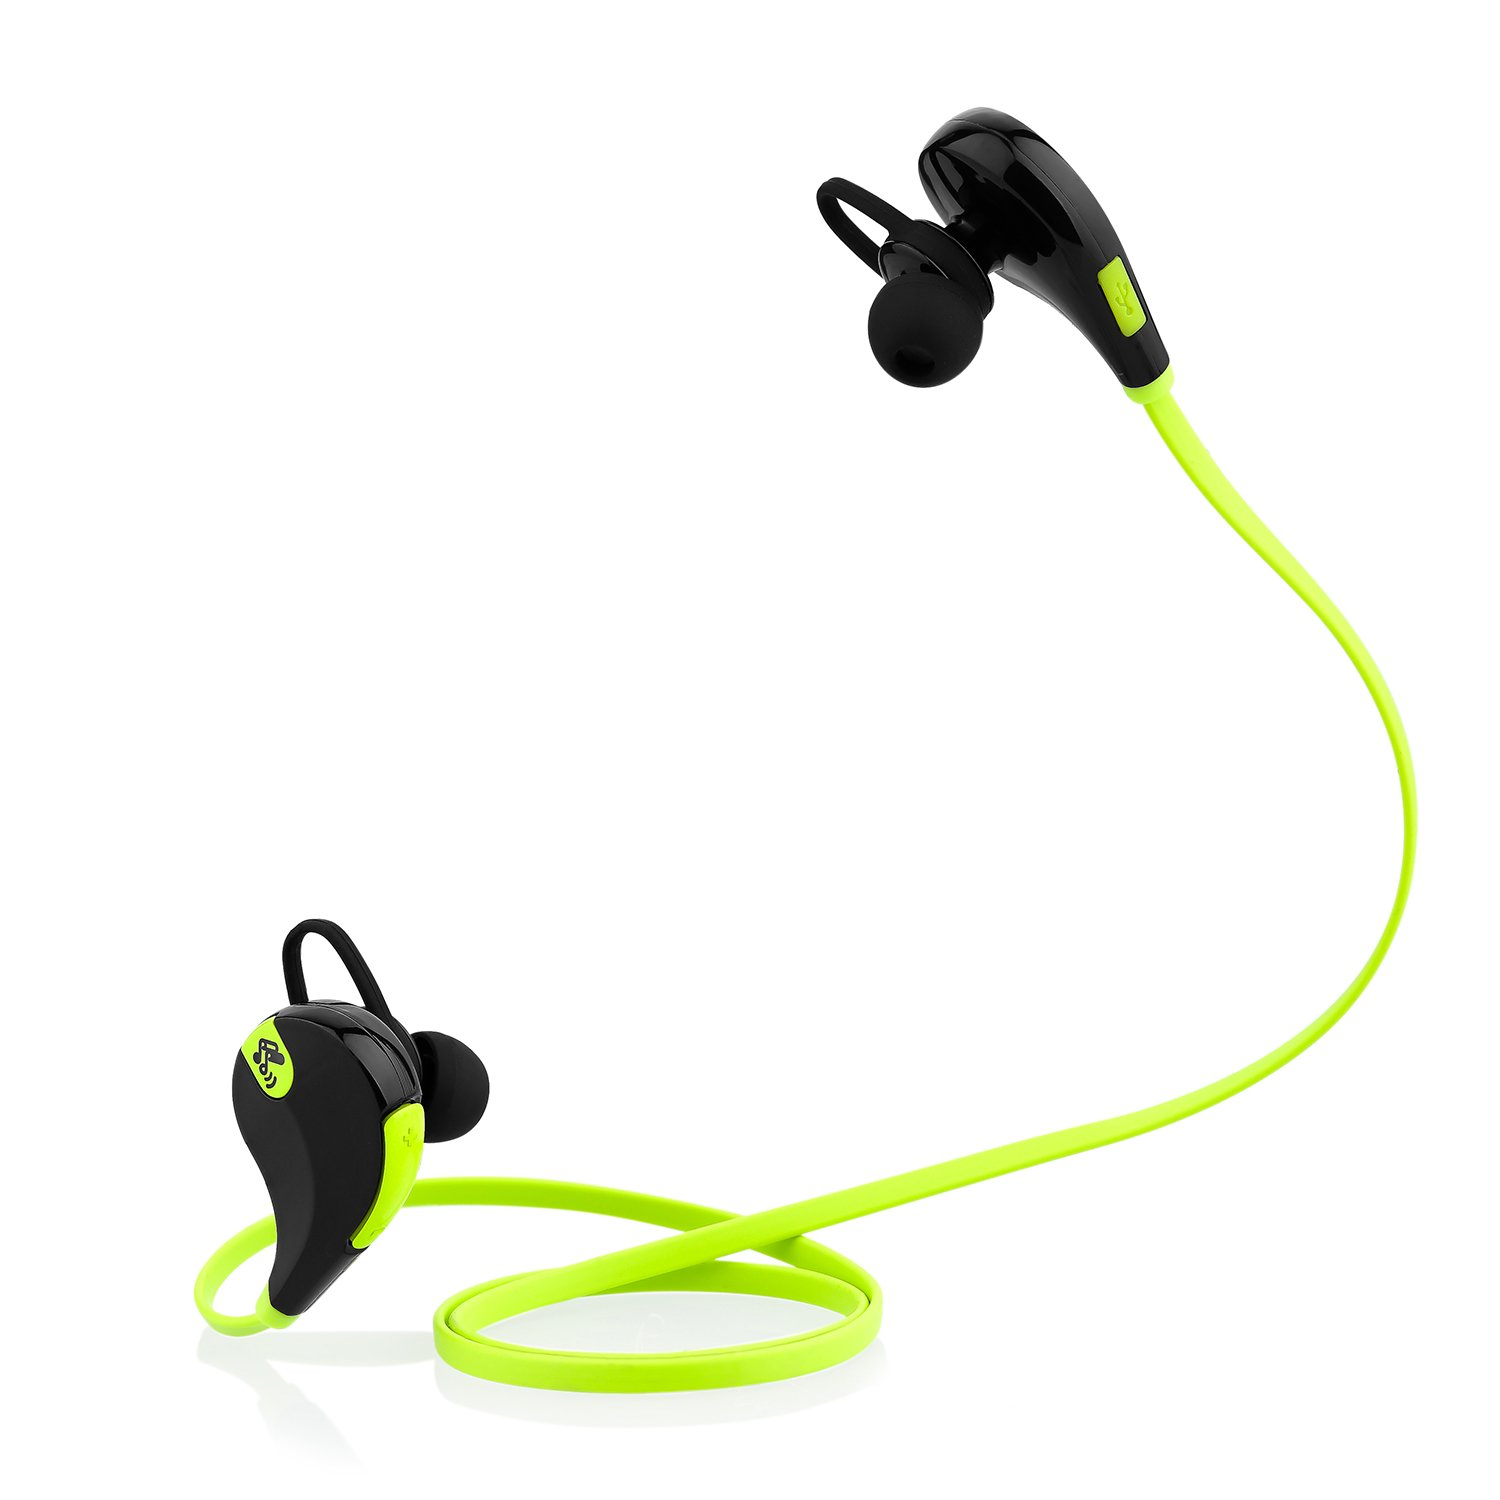 Bluetooth in ear headphones come cheap and great sound for price together with sports feature